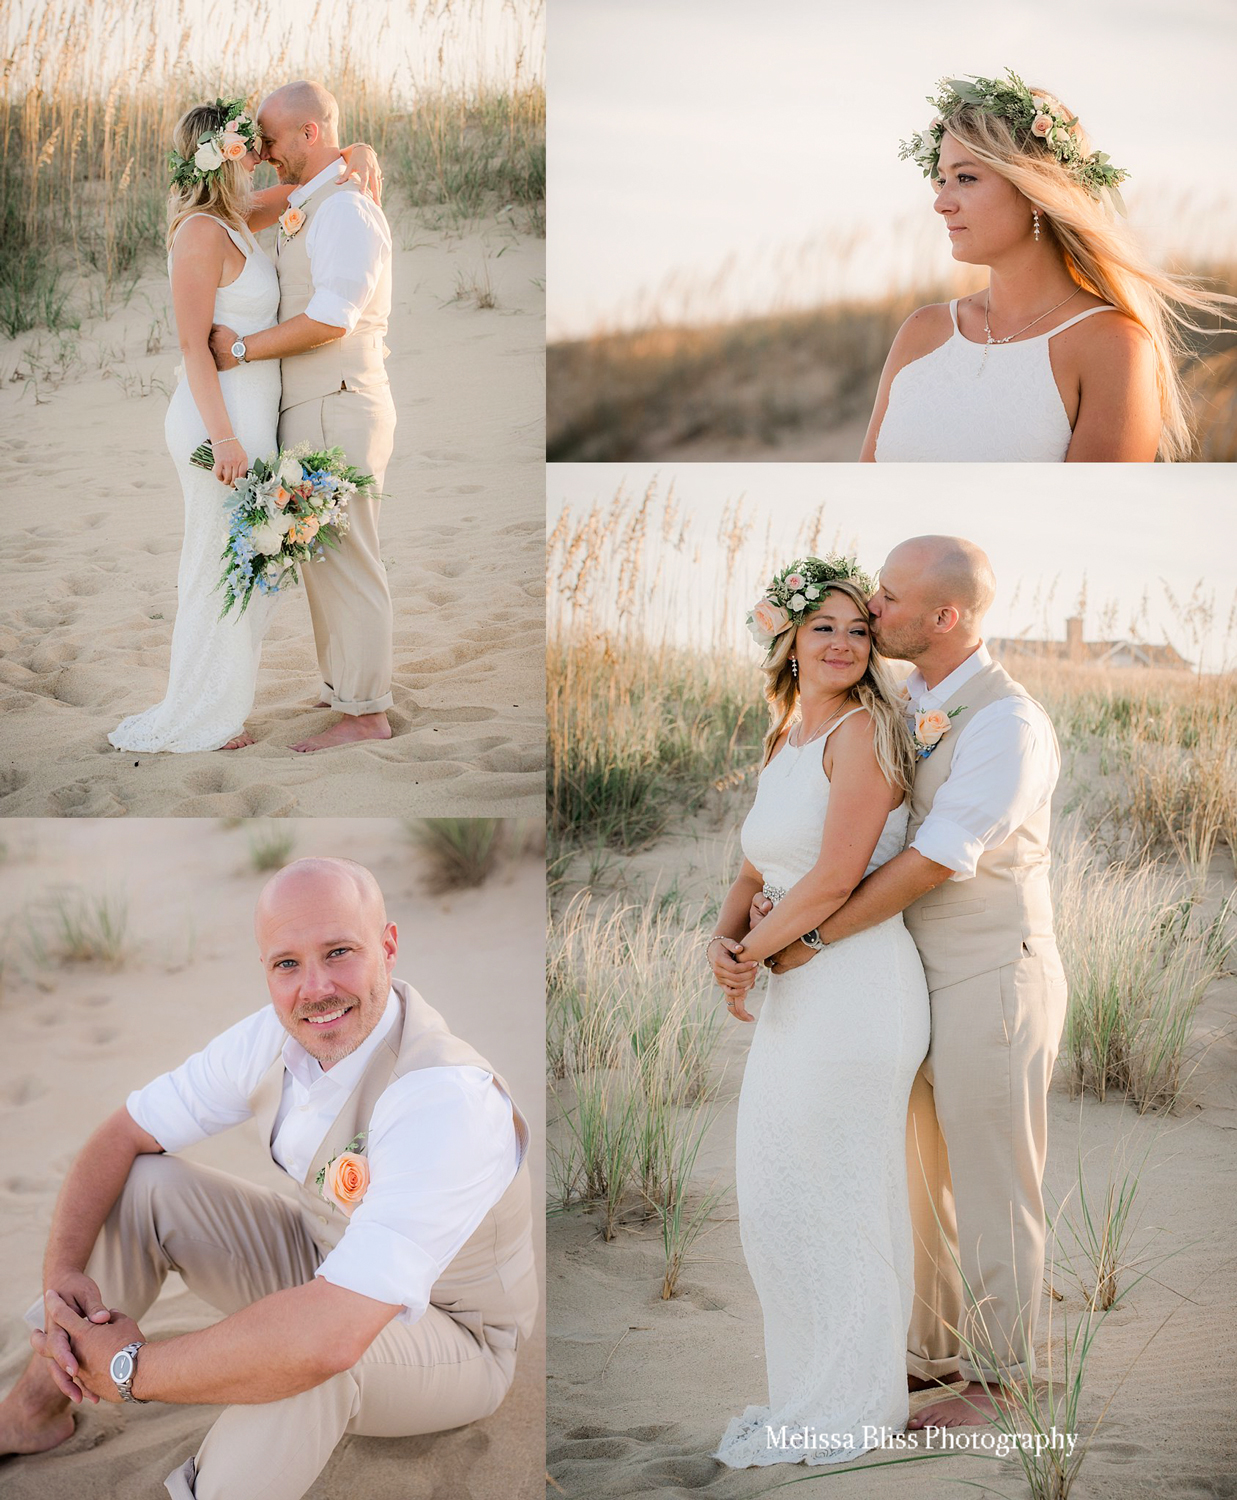 virginia-beach-elopement-photographer-melissa-bliss-photography-captures-beautiful-beach-photos-of-bride-and-groom.jpg